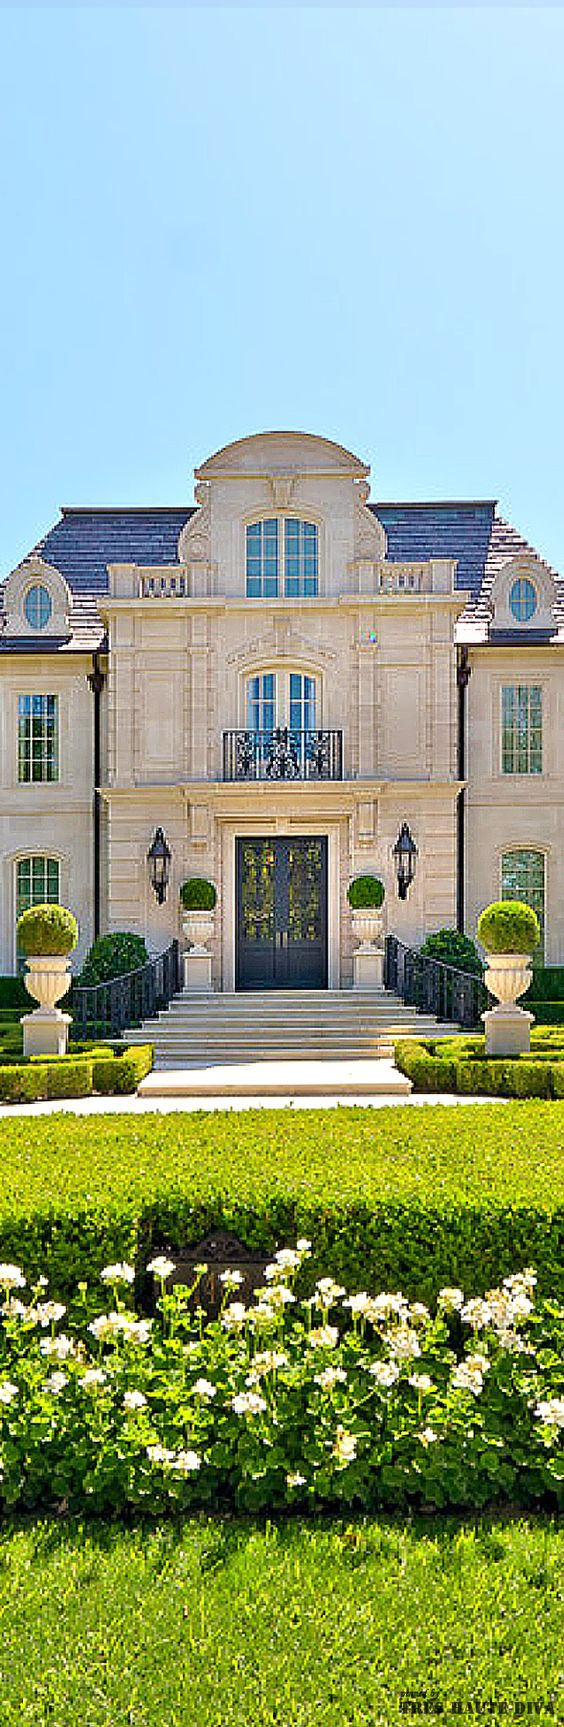 French chateau style residential estate and formal garden for French chateau style homes for sale